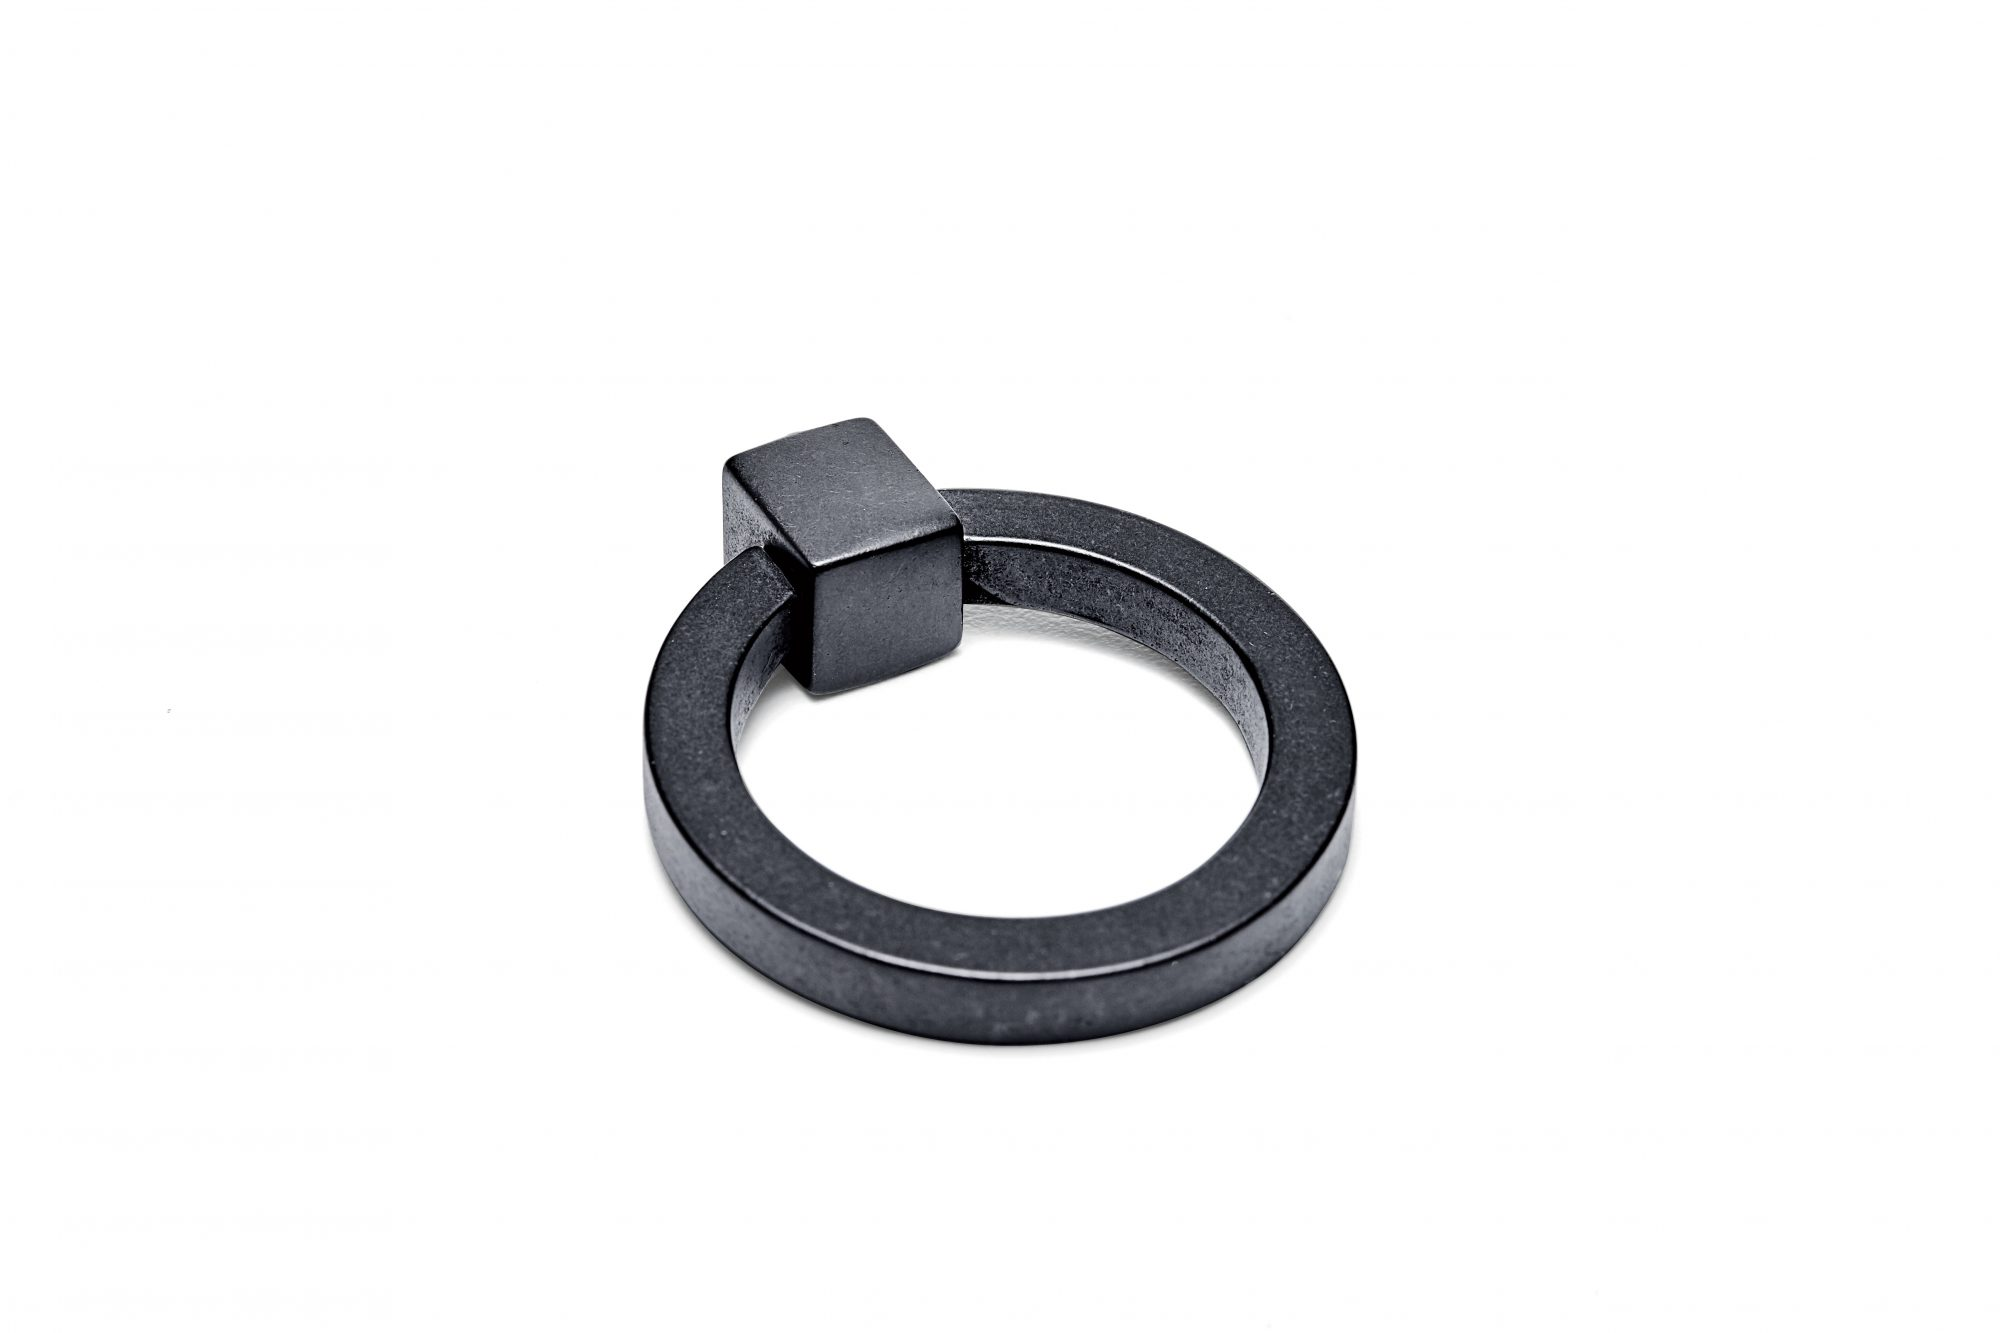 Kohler Jacquard Ring Pull in Black